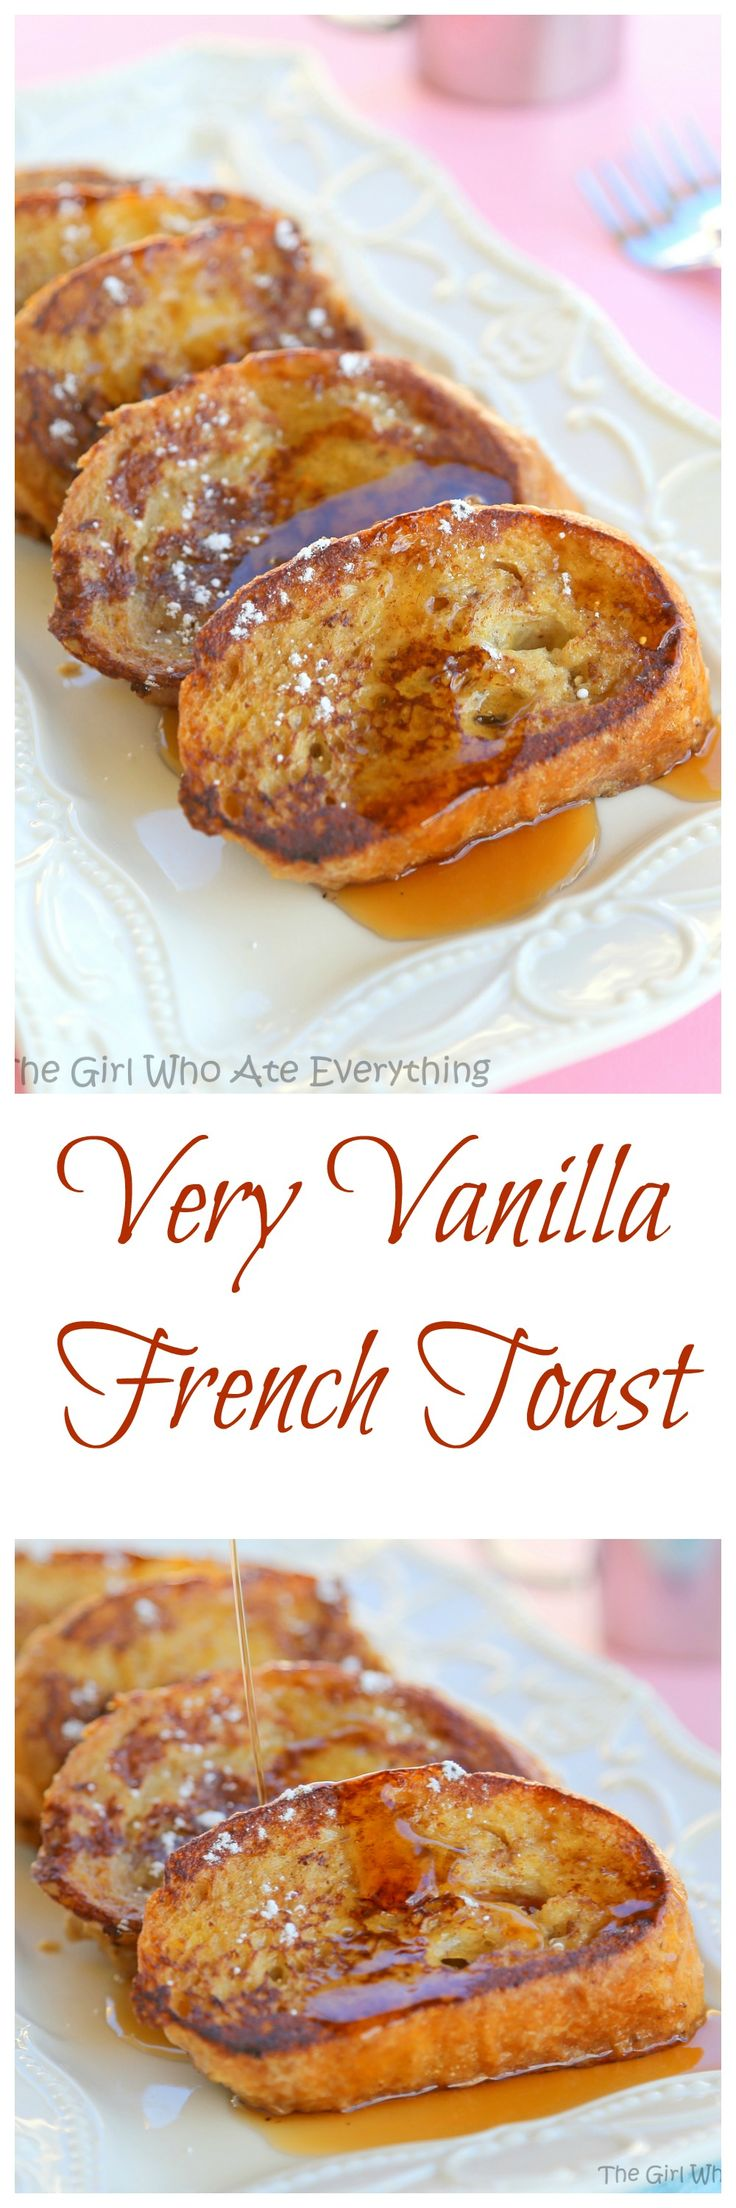 Very Vanilla French Toast - there's 1/4 cup vanilla in this French Toast and it makes it taste divine!